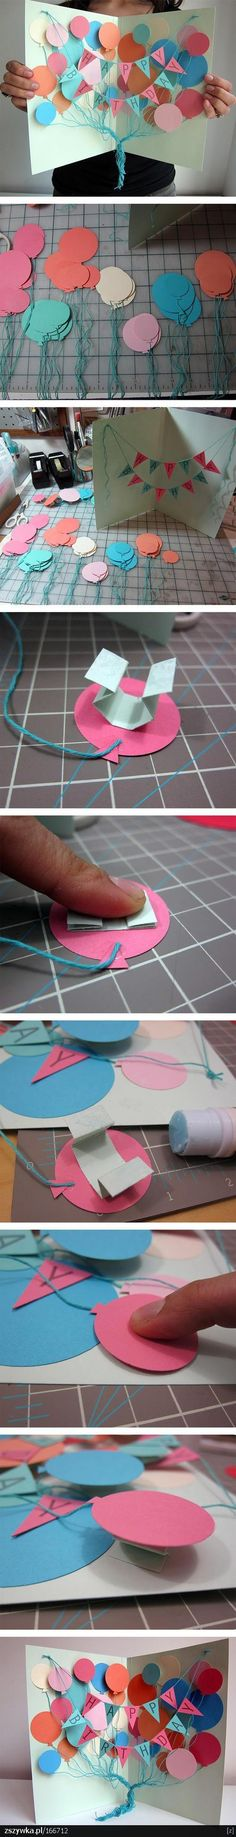 Awesome DIY Birthday Card - A Creative, Meaningful and Cheap DIY Gift for Friend. Awesome DIY Birthday Card - A Creative, Meaningful and Cheap DIY Gift for Friends and Family. Kids Crafts, Diy And Crafts, Craft Projects, Tarjetas Diy, Ideias Diy, Crafty Craft, Diy Cards, Paper Cards, Homemade Cards